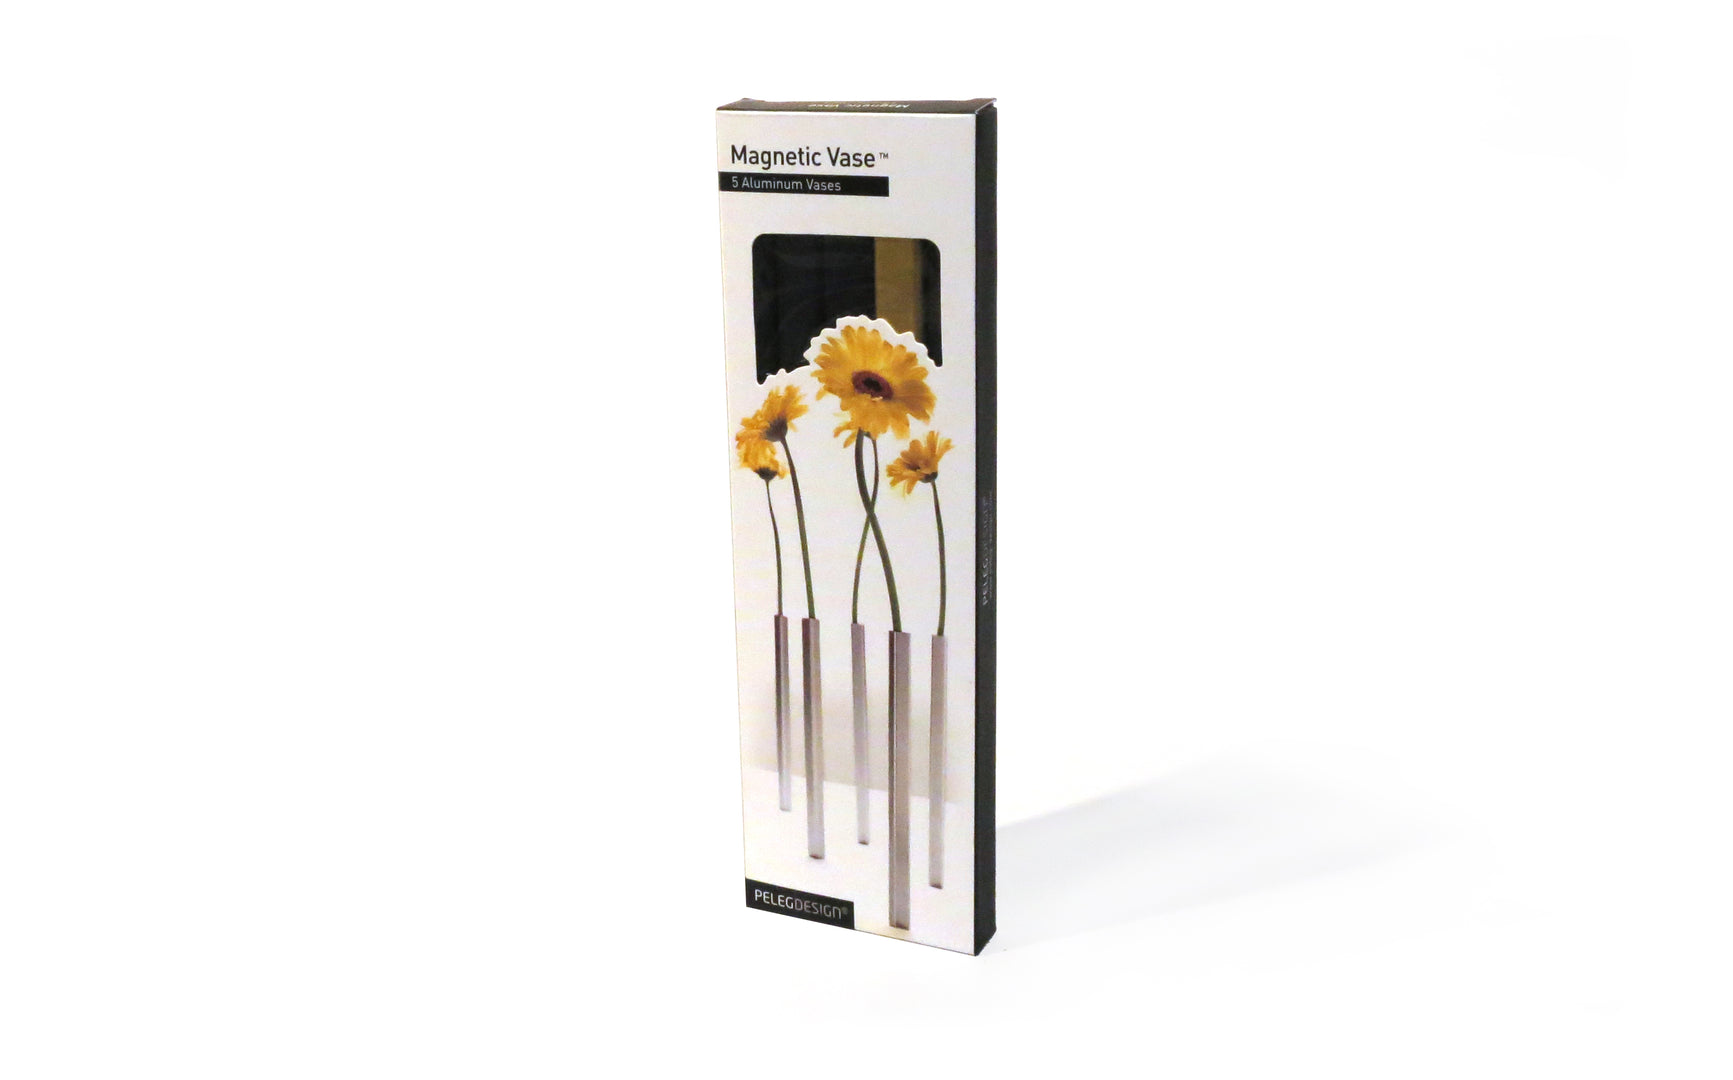 Magnetic Vase - Limited Edition